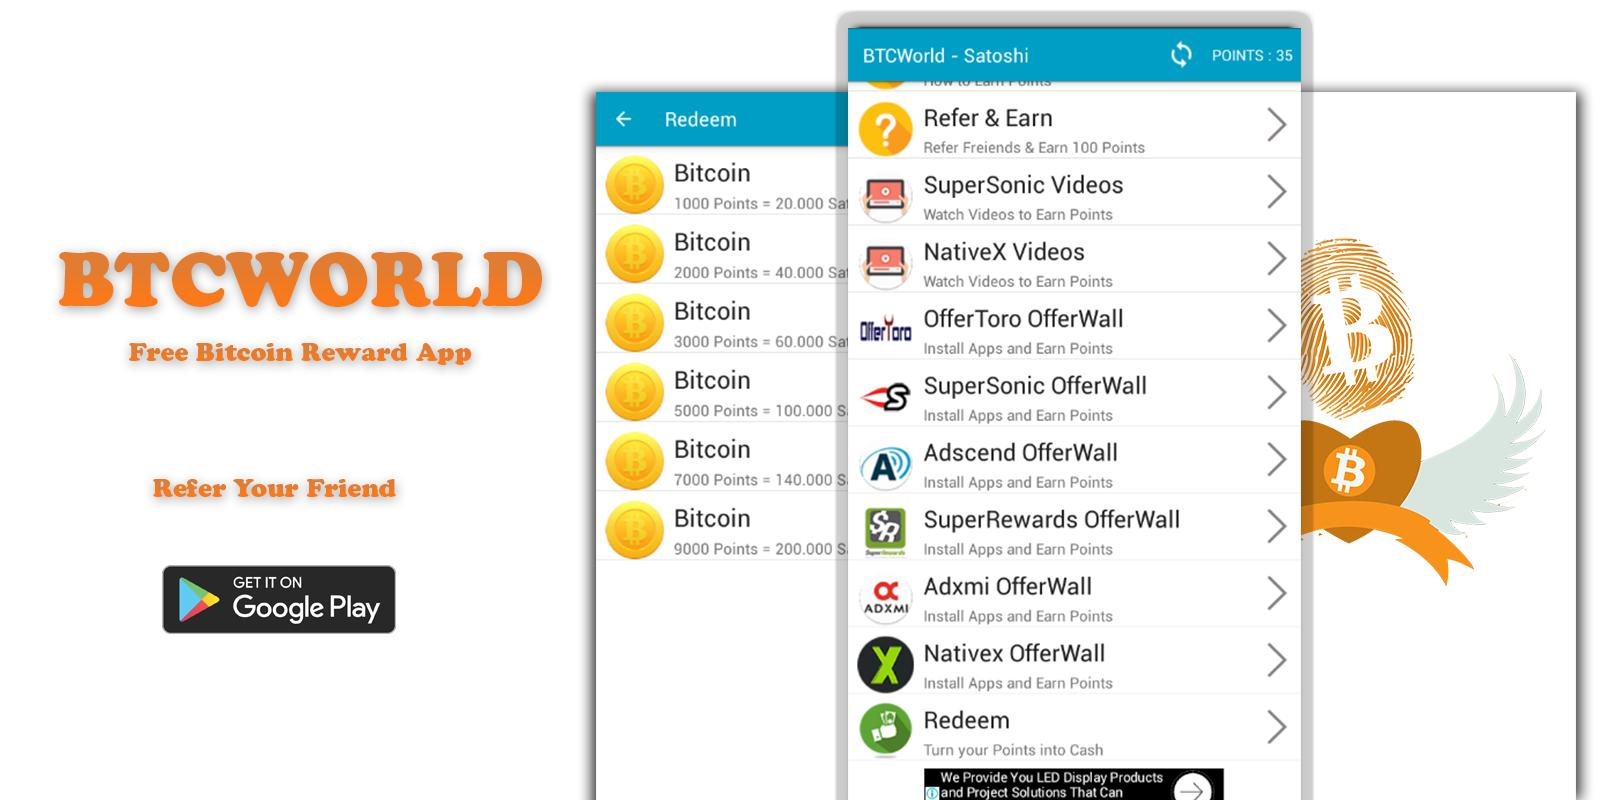 Btcworld Free Bitcoin Reward App For Android Apk Download -